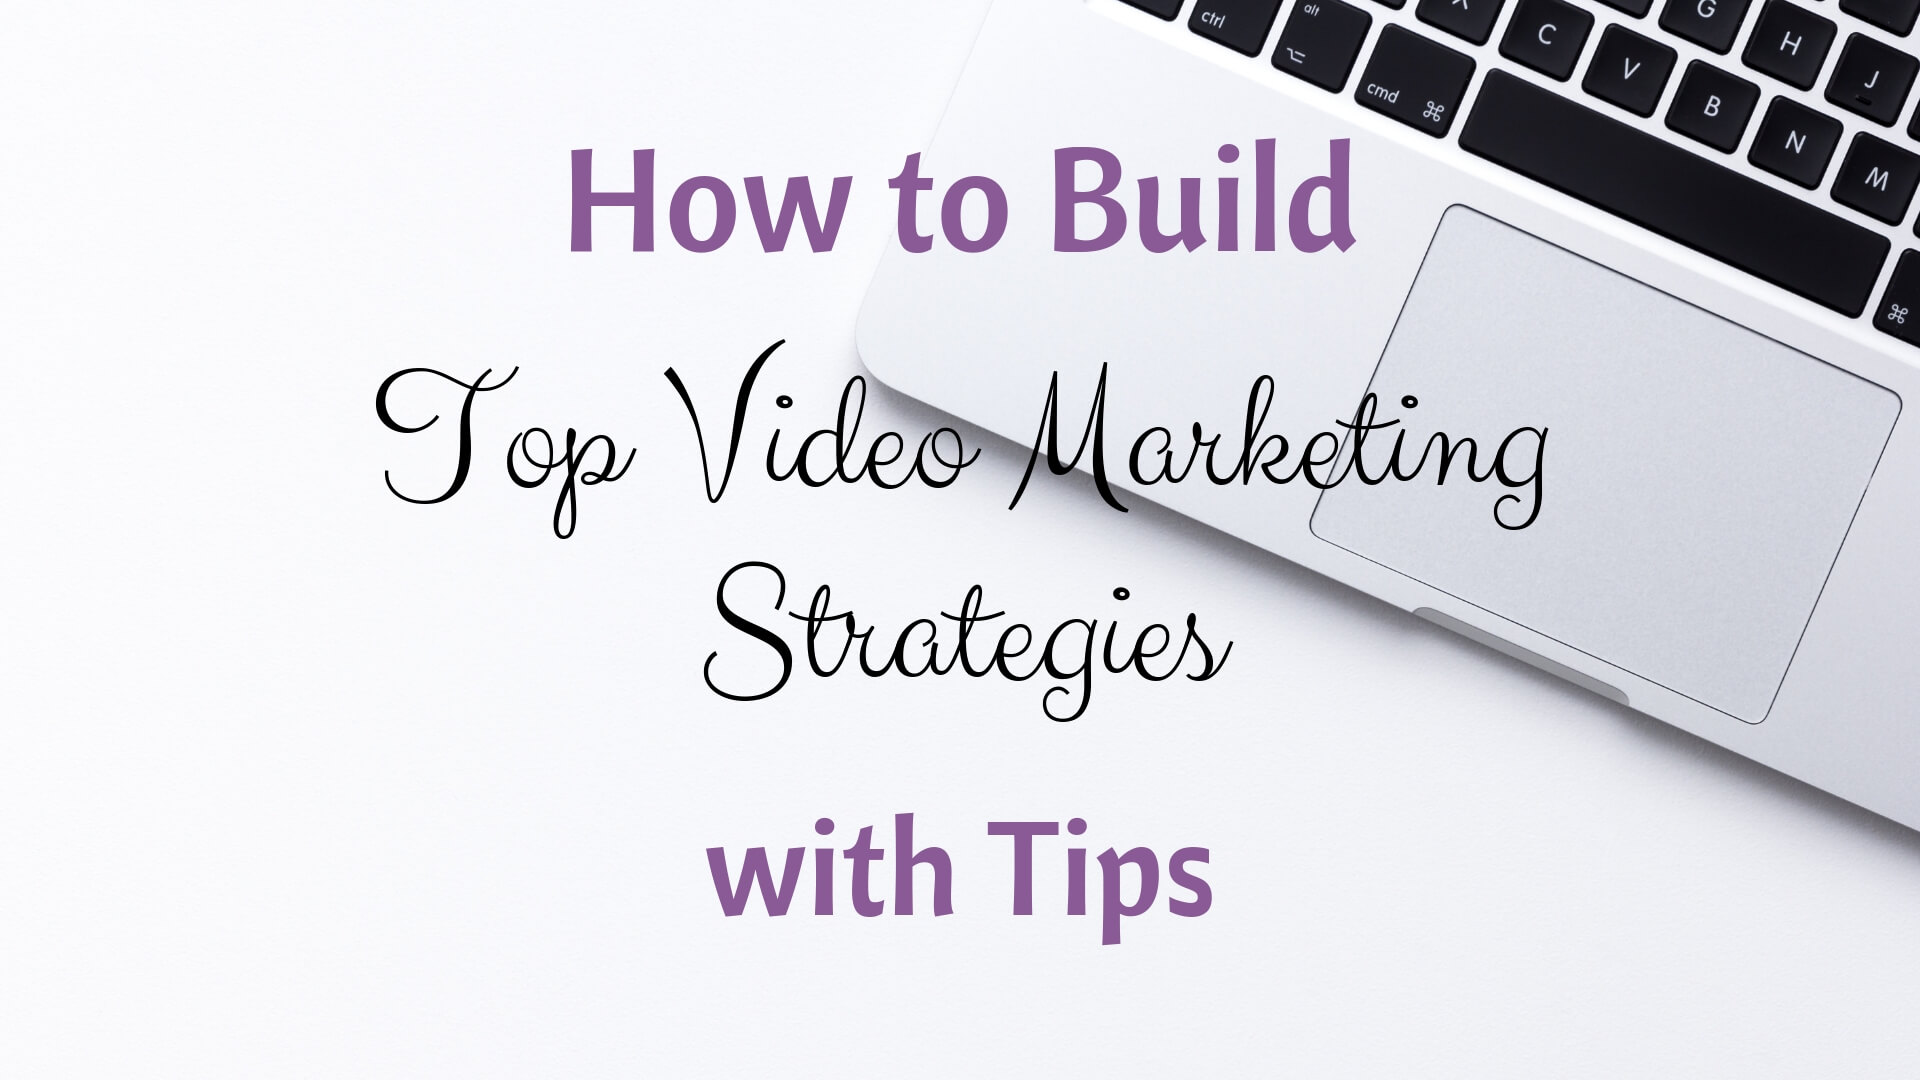 How to Build Top Video Marketing Strategies- With Tips